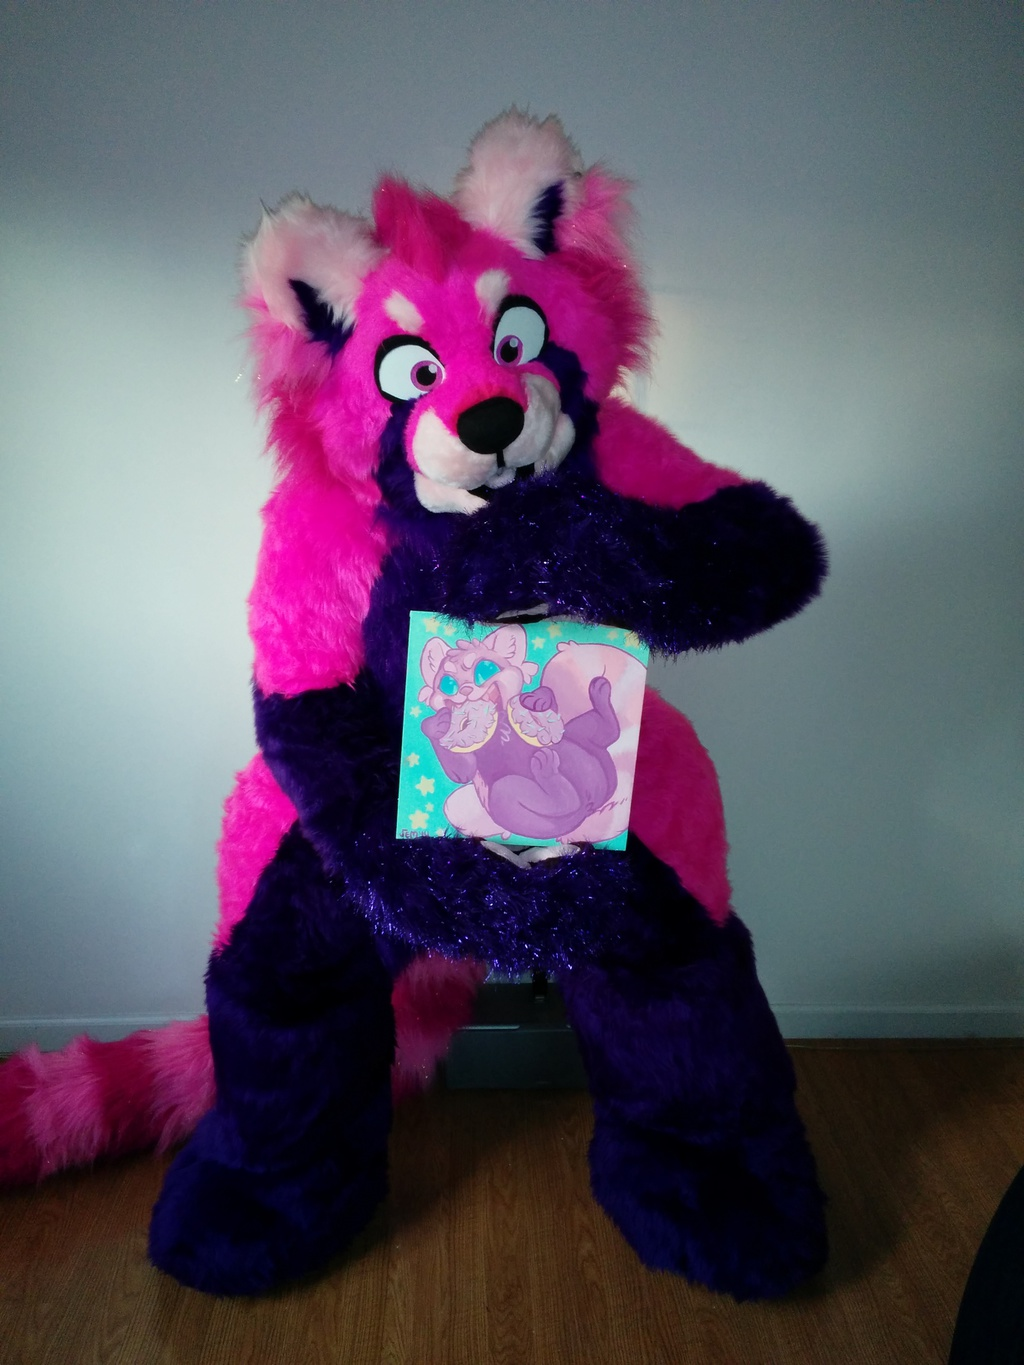 Most recent image: Posing with Quaggy Art